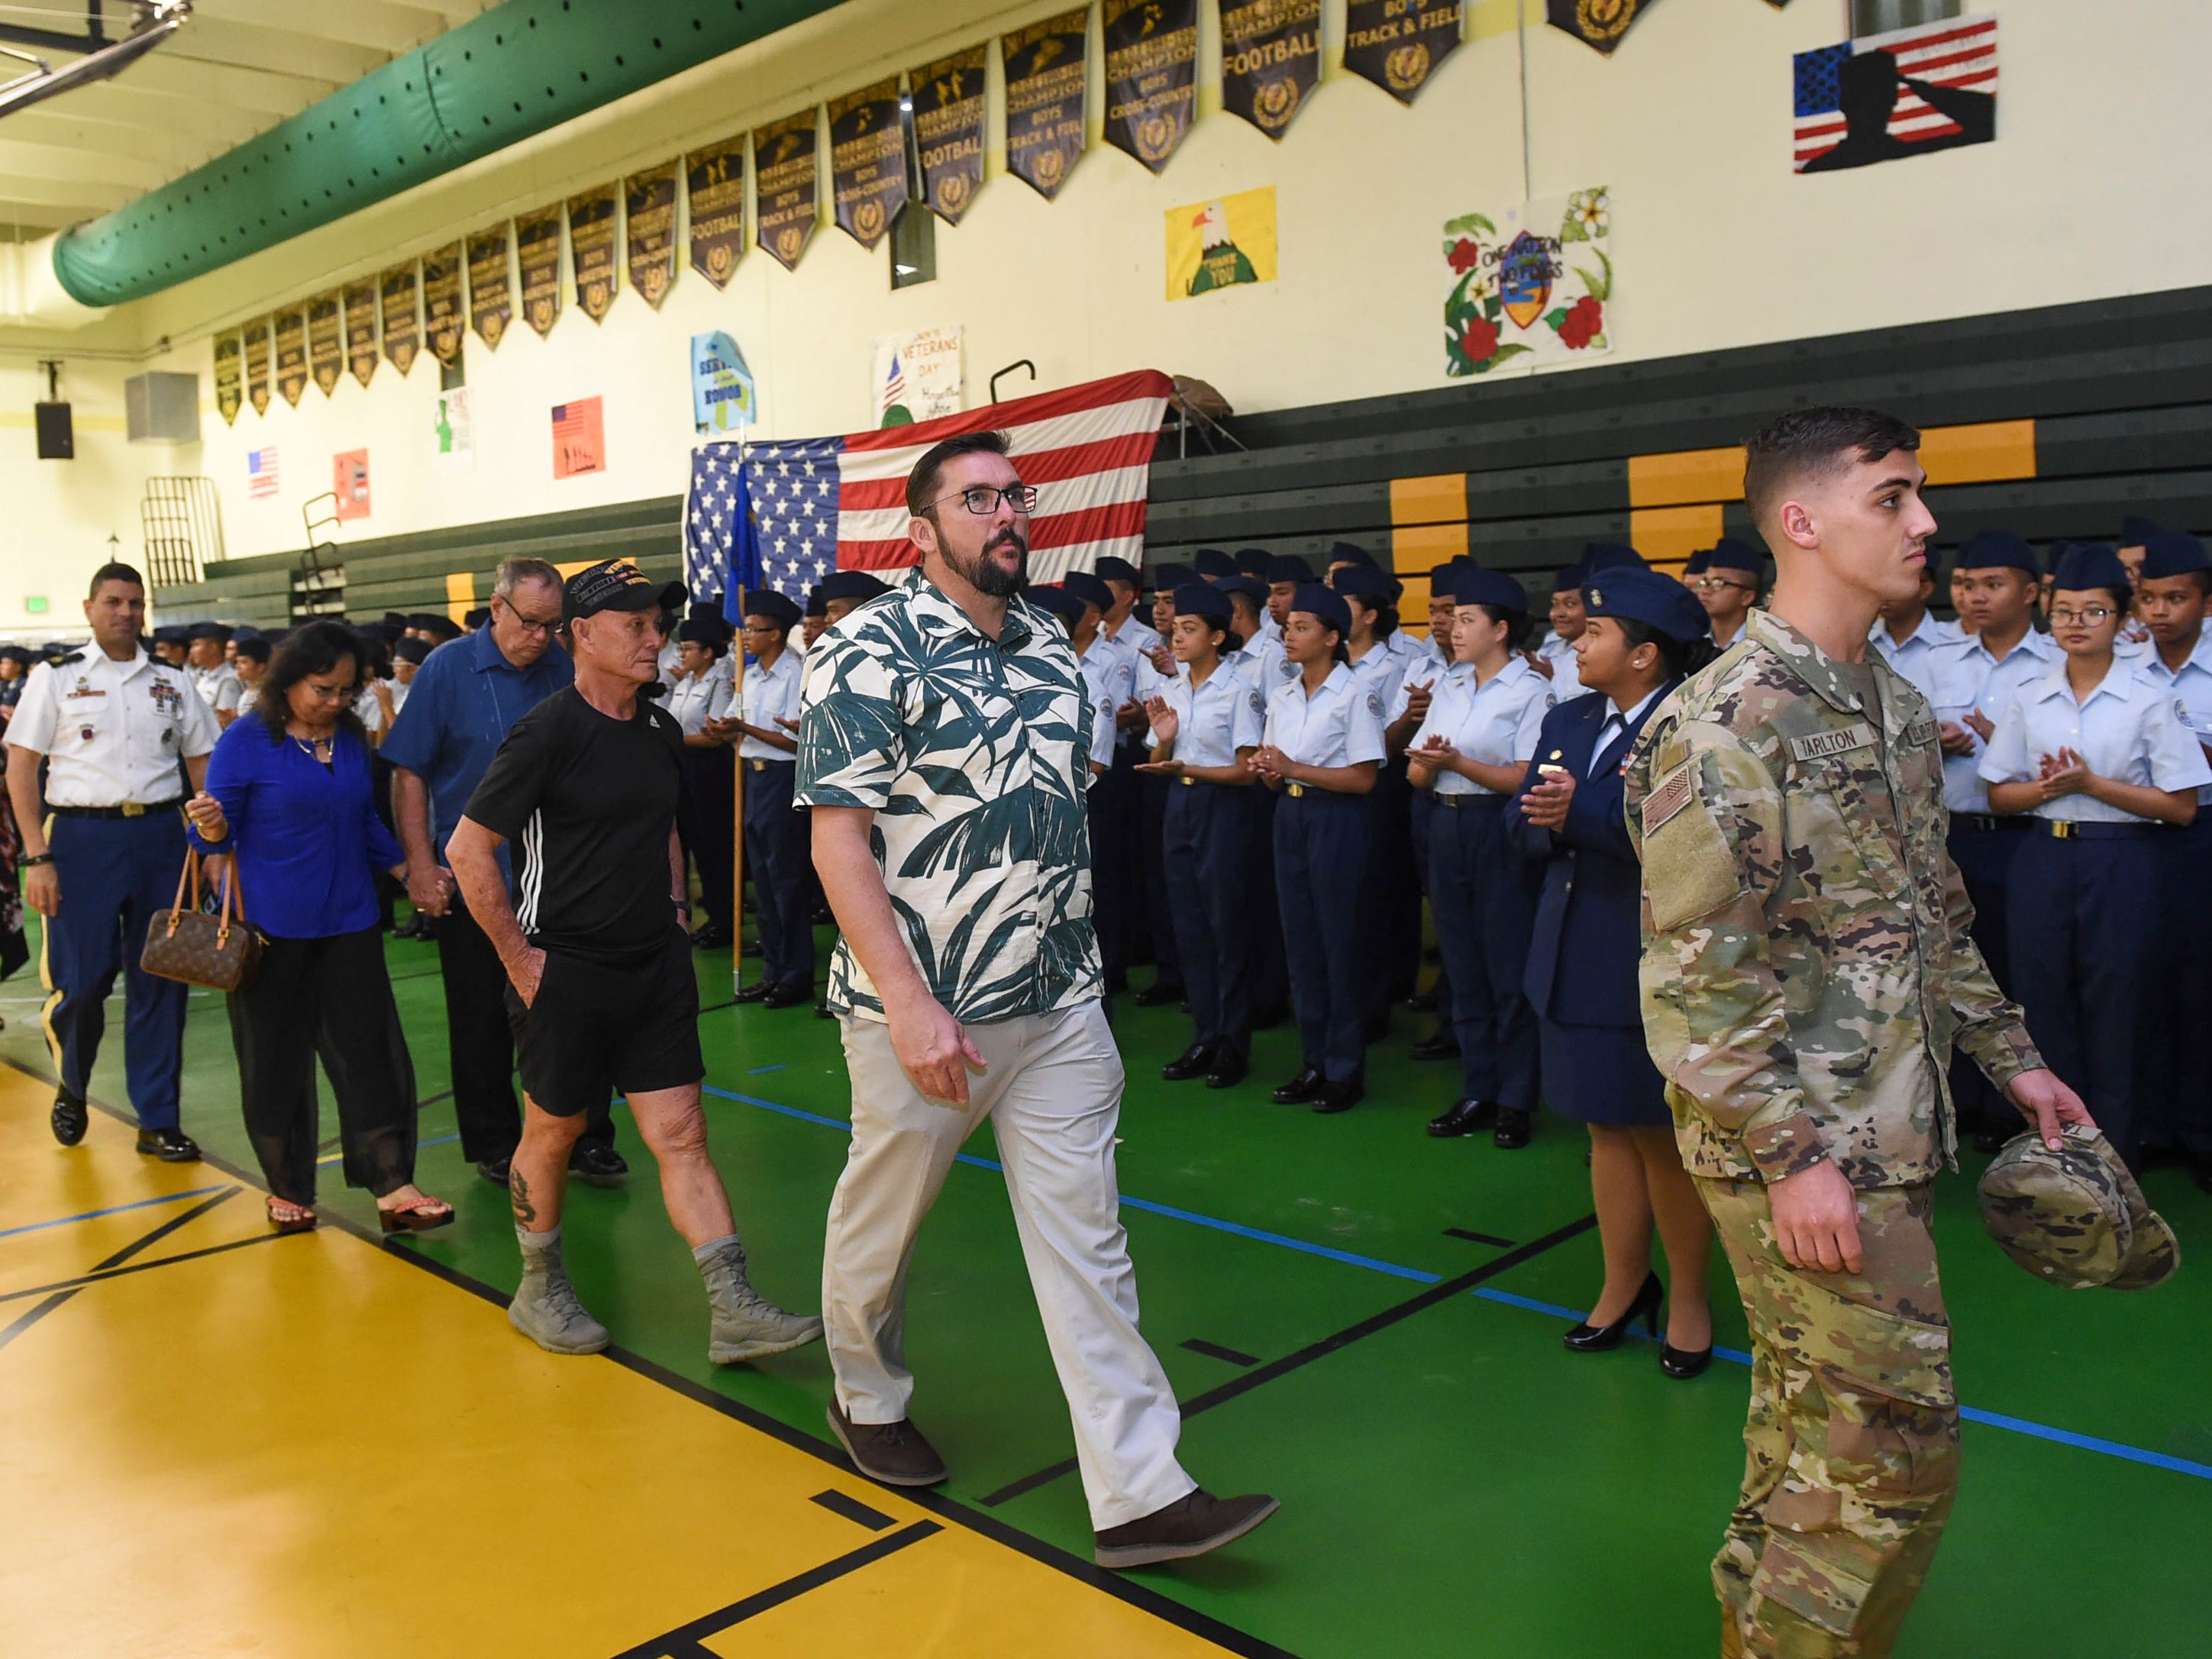 Veterans and dignitaries march in the Veterans' Parade during the John F. Kennedy High School Veterans Recognition Ceremony, Nov. 9, 2018.